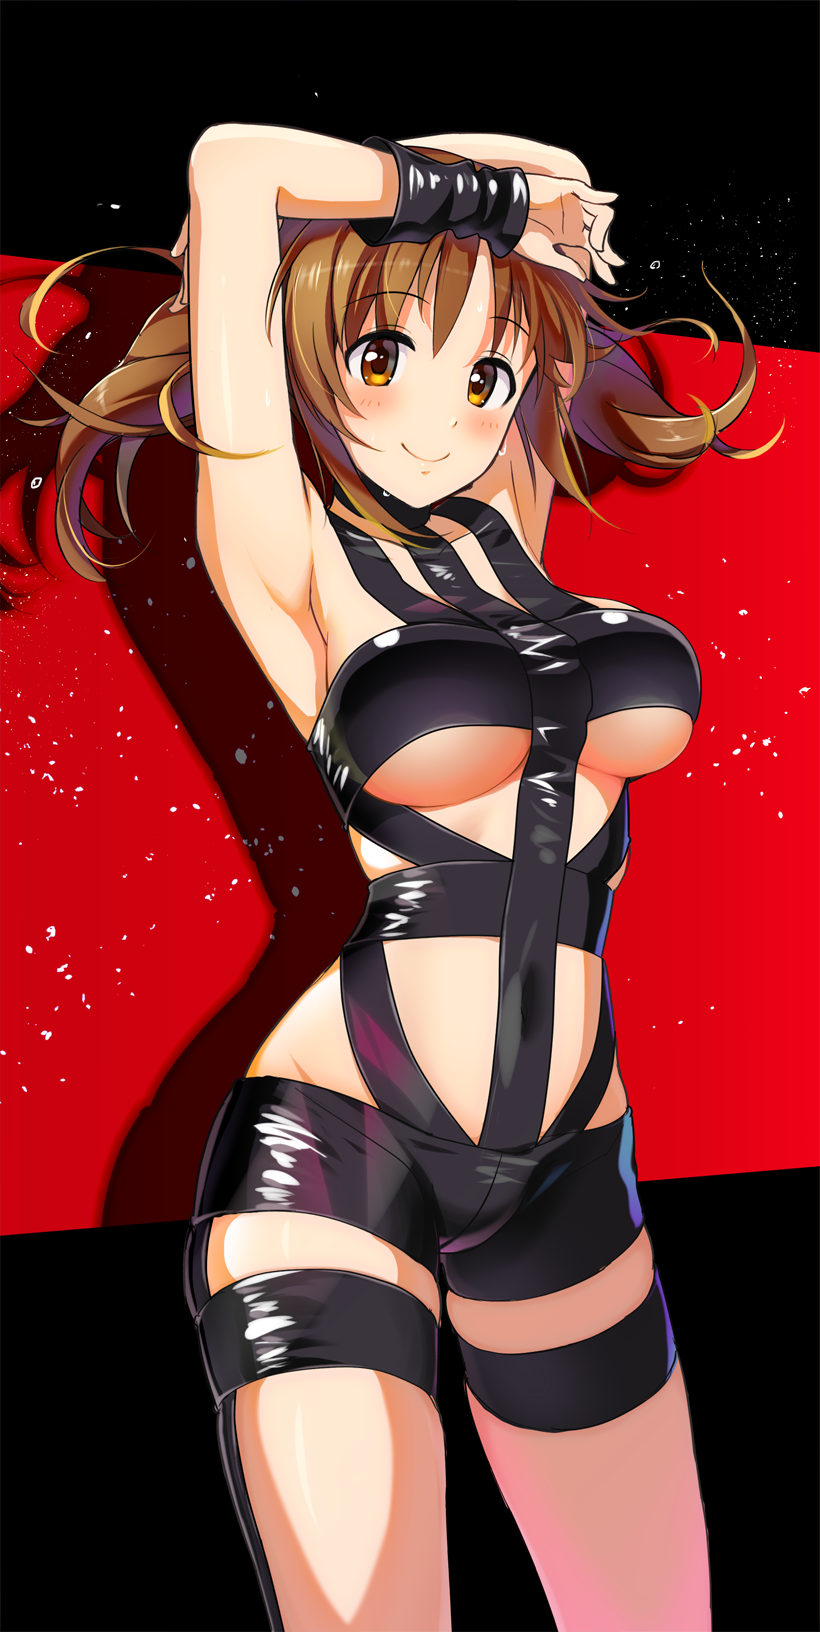 1girl armpits arms_up blush breasts brown_eyes brown_hair collarbone covered_navel highres hips hot_limit idolmaster idolmaster_cinderella_girls large_breasts long_hair looking_at_viewer natsuya revealing_clothes shadow smile solo sweat sweatdrop t.m.revolution thighs totoki_airi twintails under_boob waist wrist_cuffs